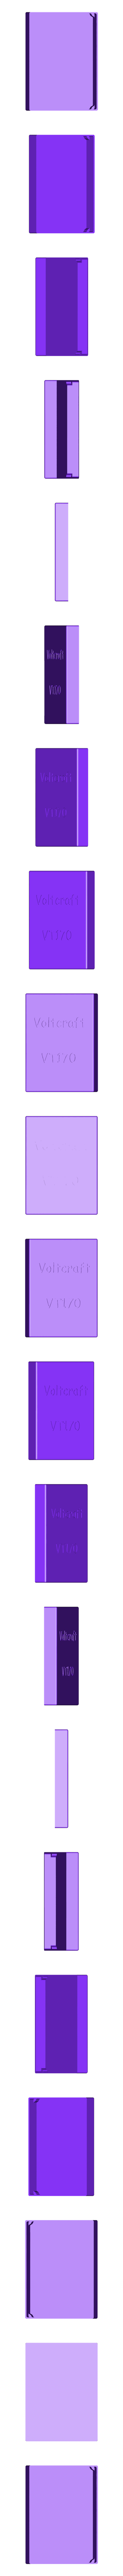 Voltcraft VC170 couvercle.stl Download free STL file Box for Voltmeter • 3D print template, Ldom21